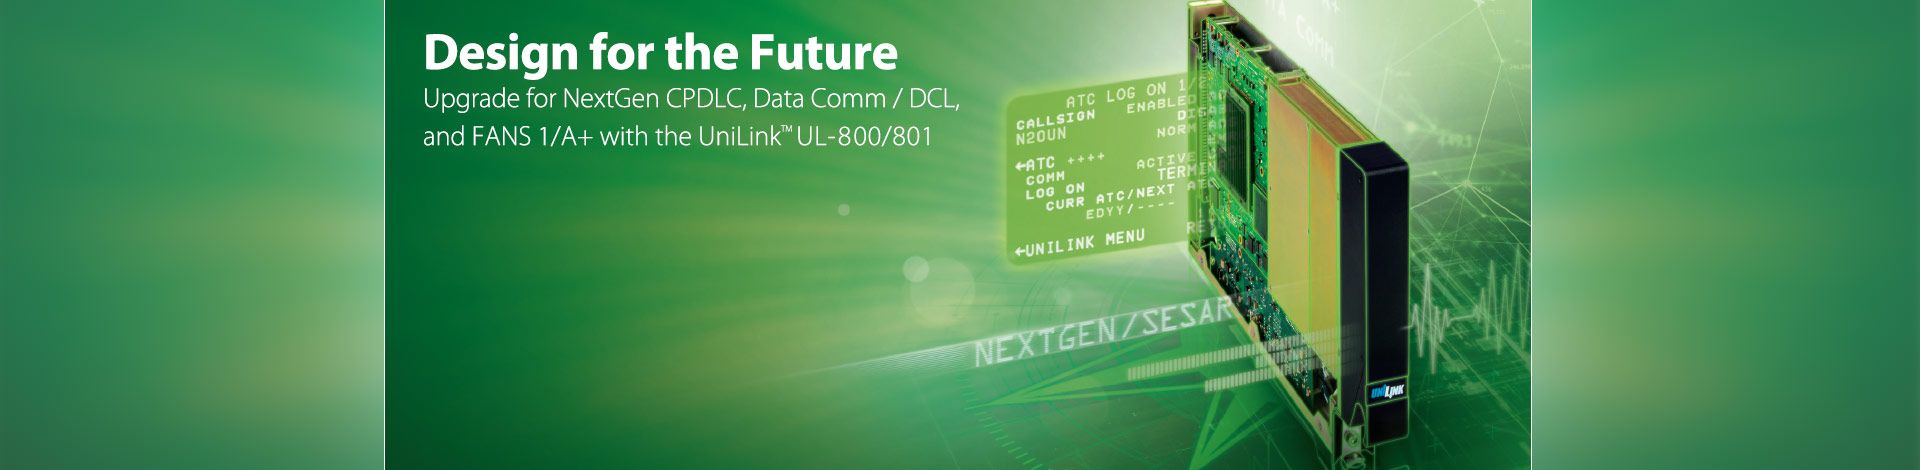 Design for the Future with UniLink